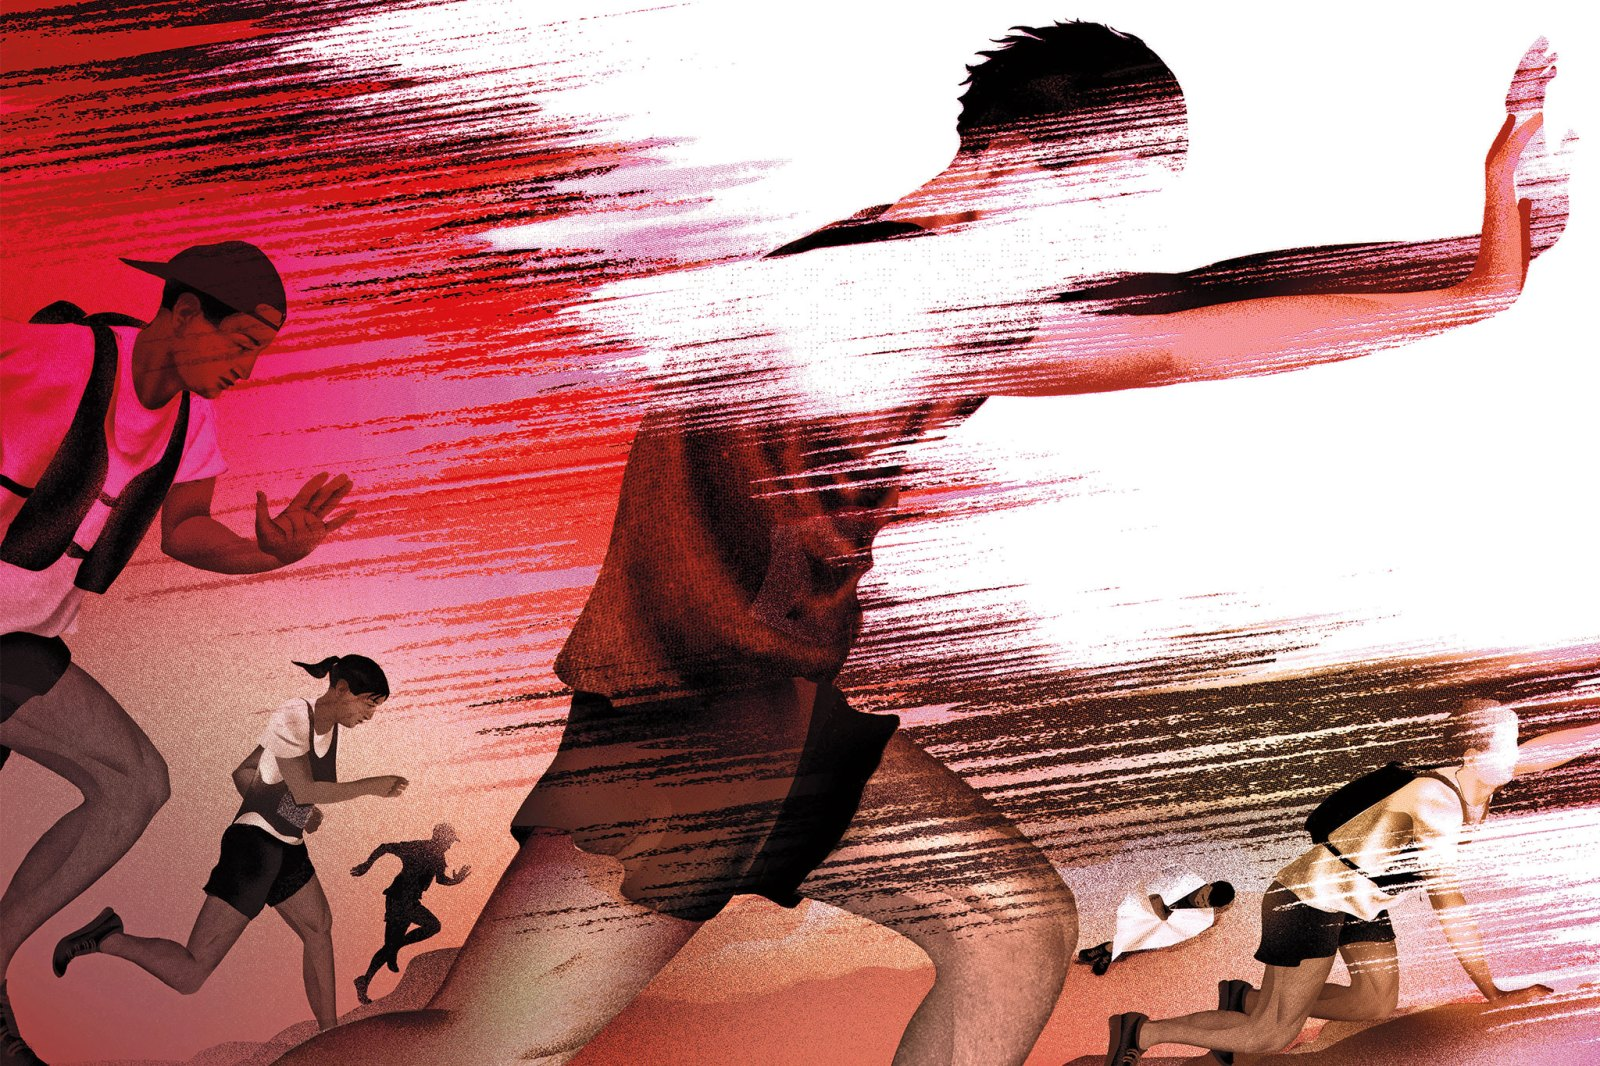 Illustration of runners against red flashes